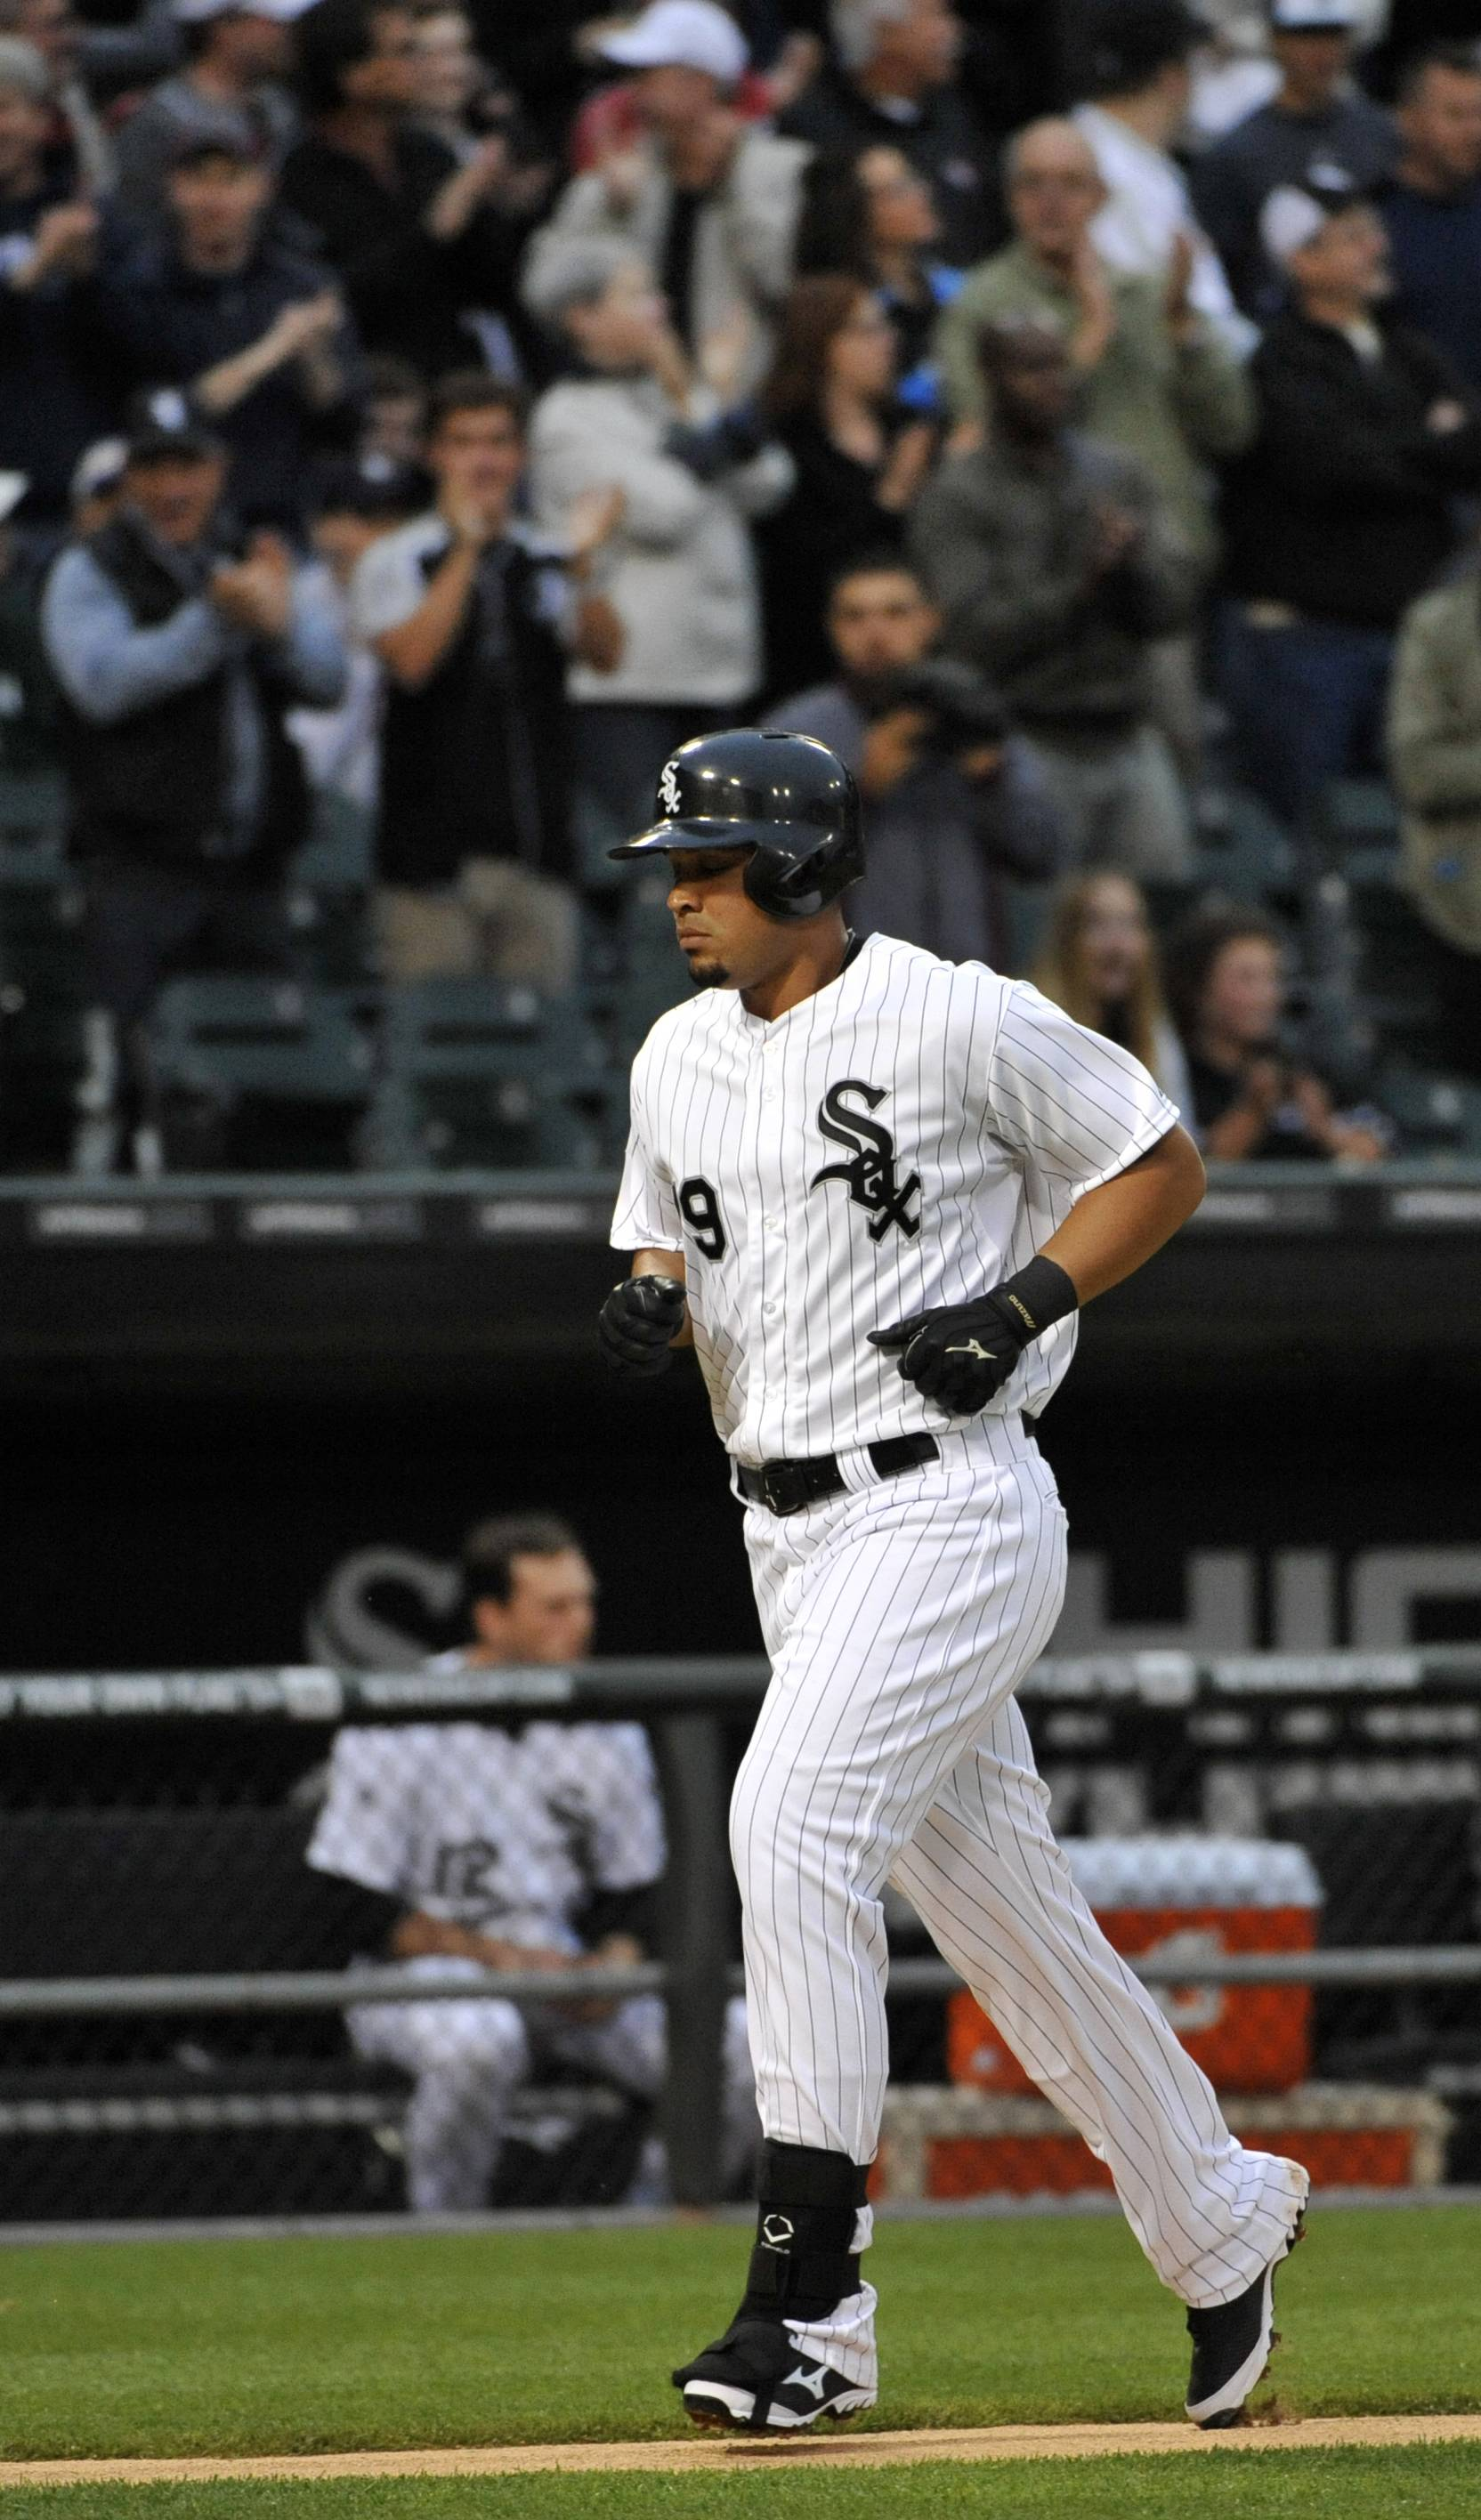 Chicago White Sox's Jose Abreu rounds the bases after hitting a solo home run during the second inning of a baseball game Wednesday against the Detroit Tigers in Chicago.